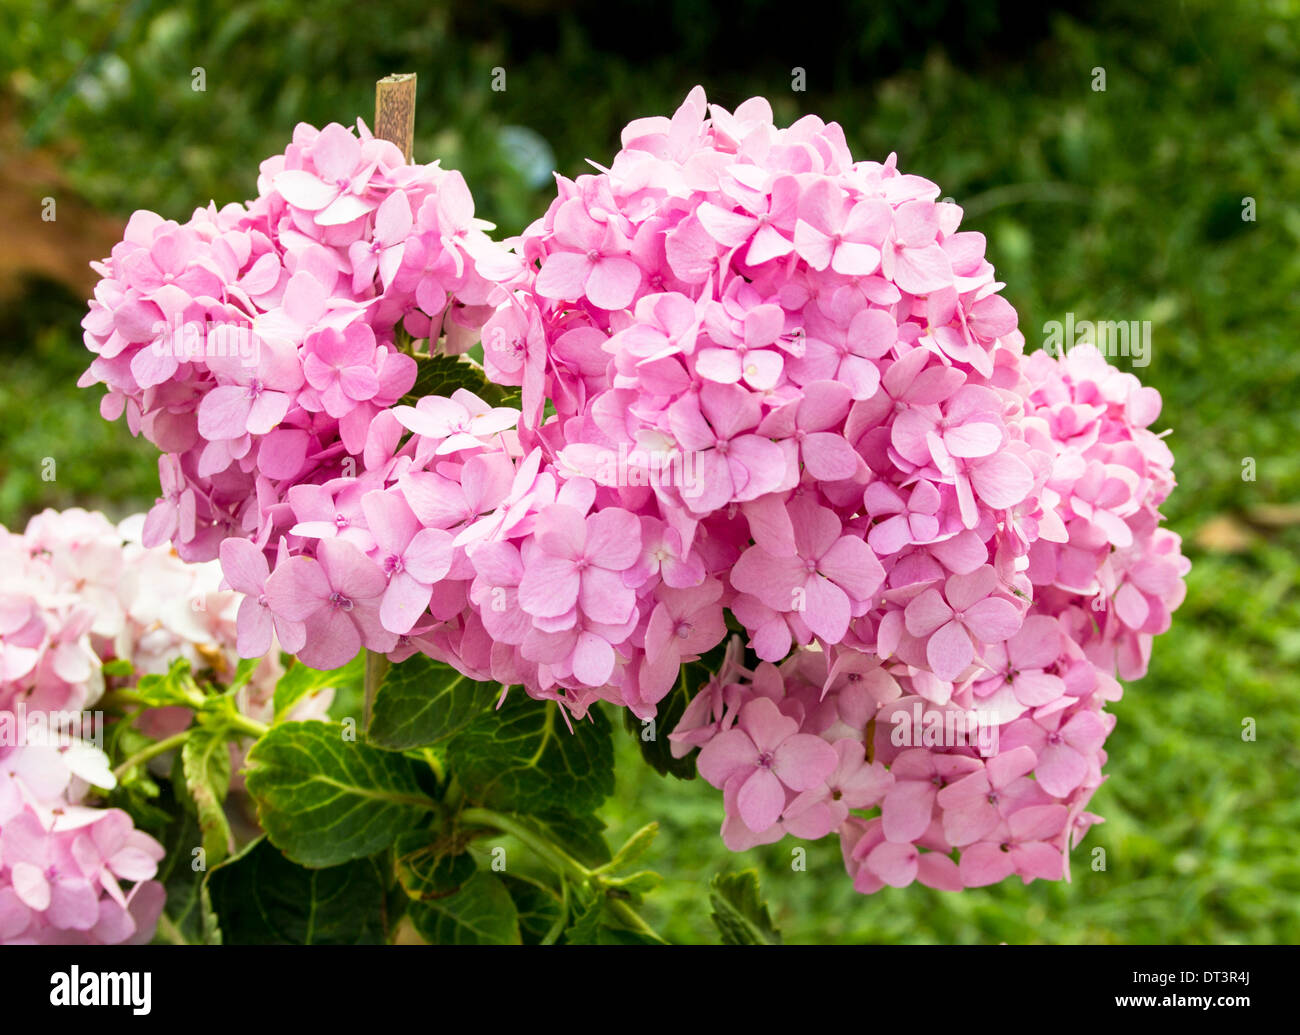 Beautiful blooming pink hydrangea flowers - Stock Image